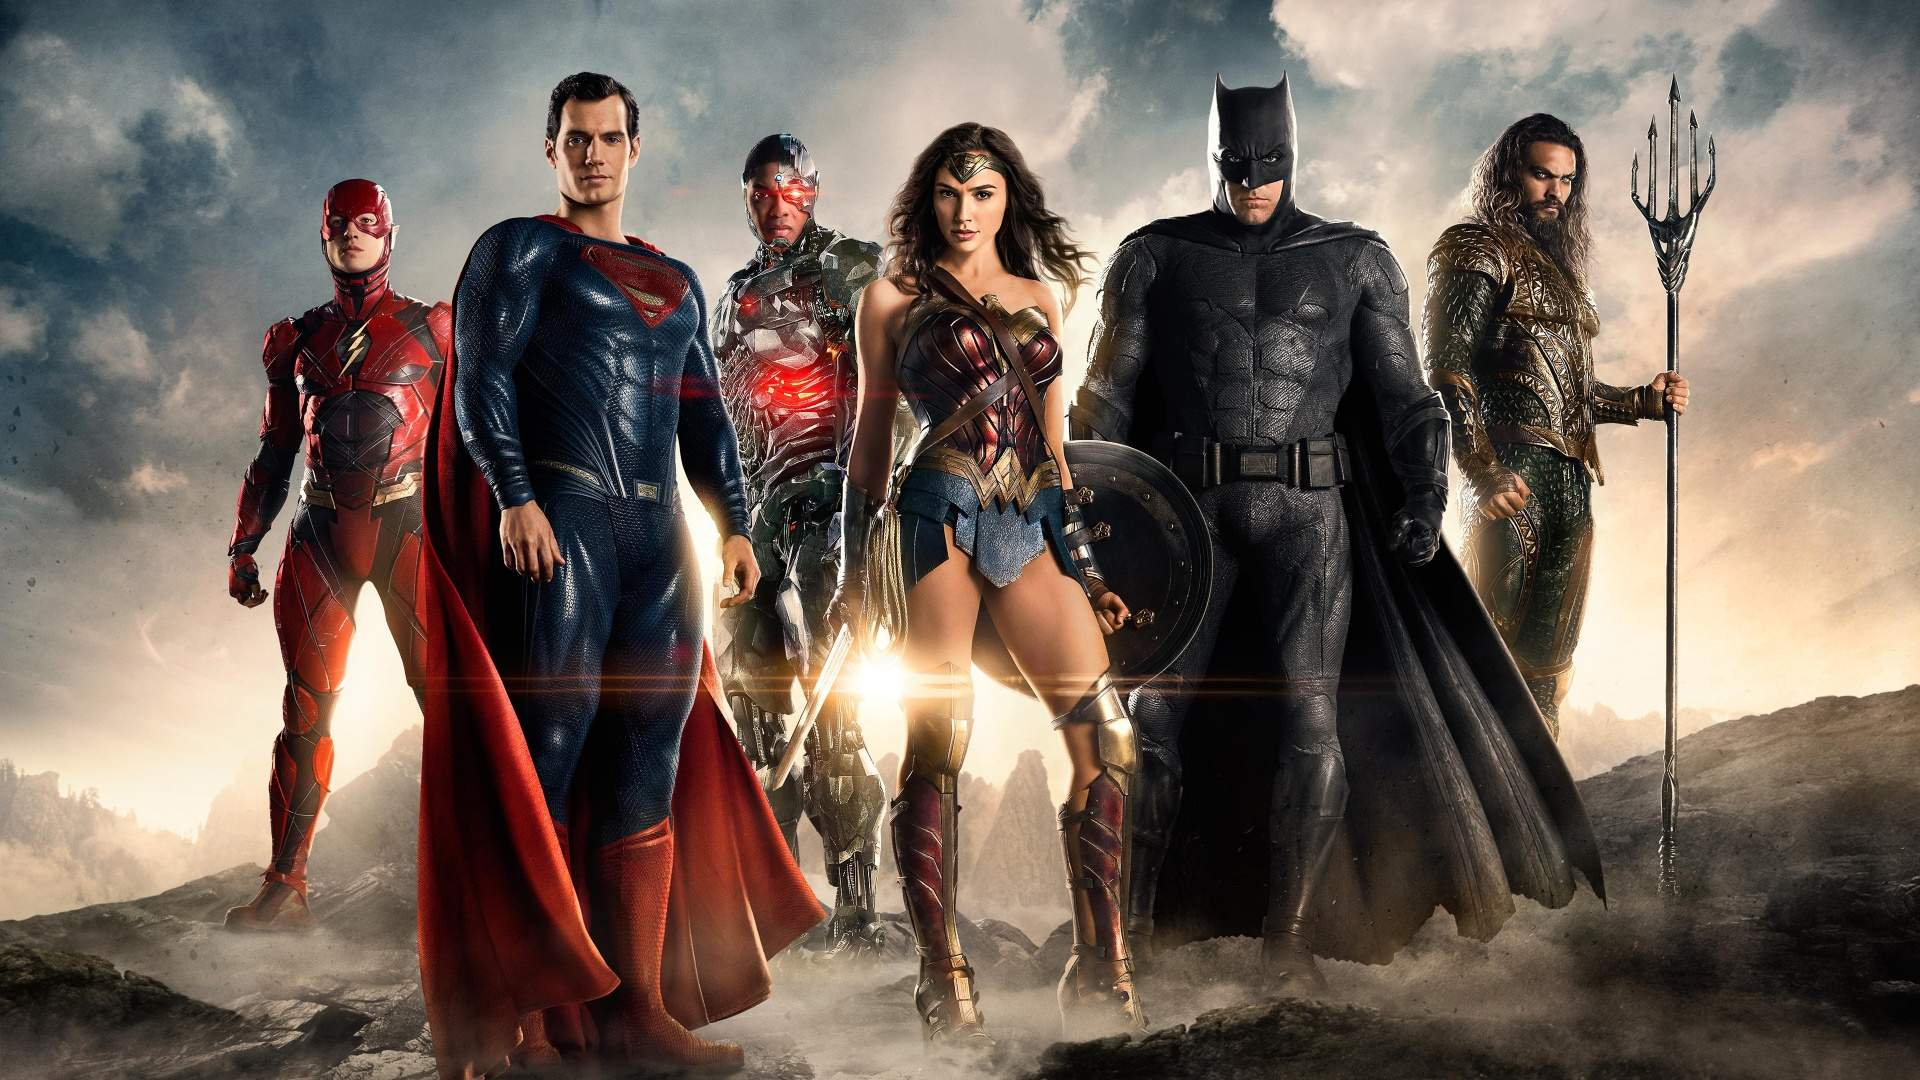 Justice-League-Movie-1920x1080-Need-iPhone-S-Plus-Background-for-IPhoneSPl-wallpaper-wp3407669